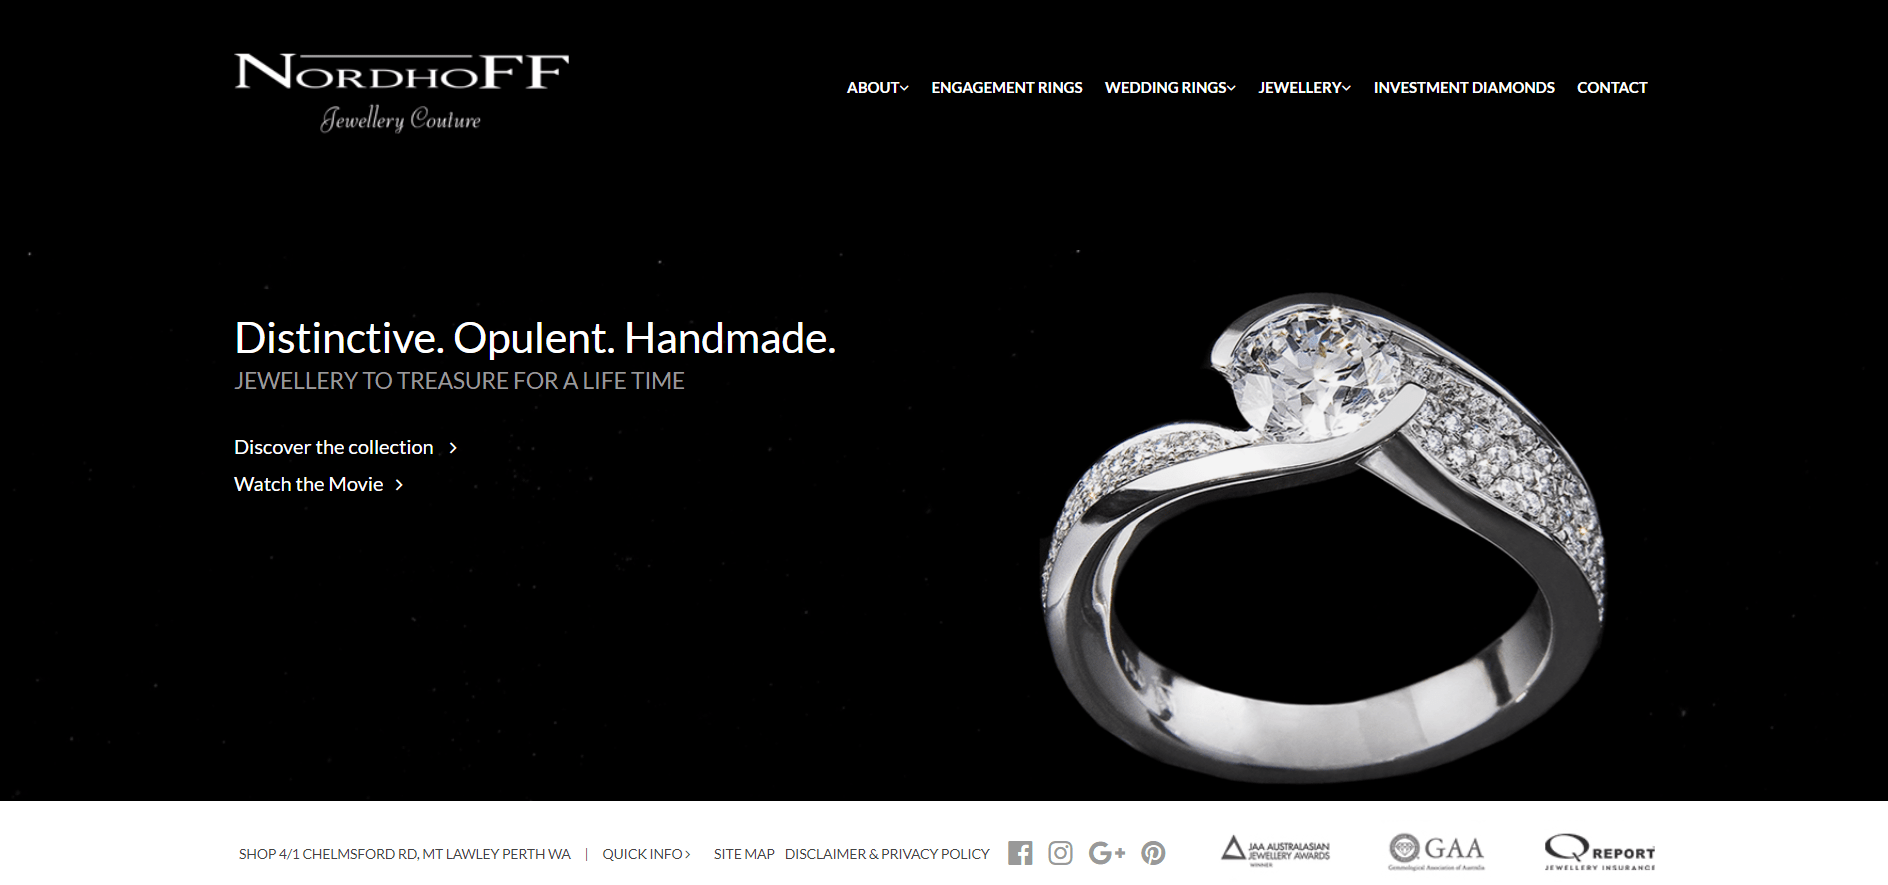 Nordhoff Jewellery Couture